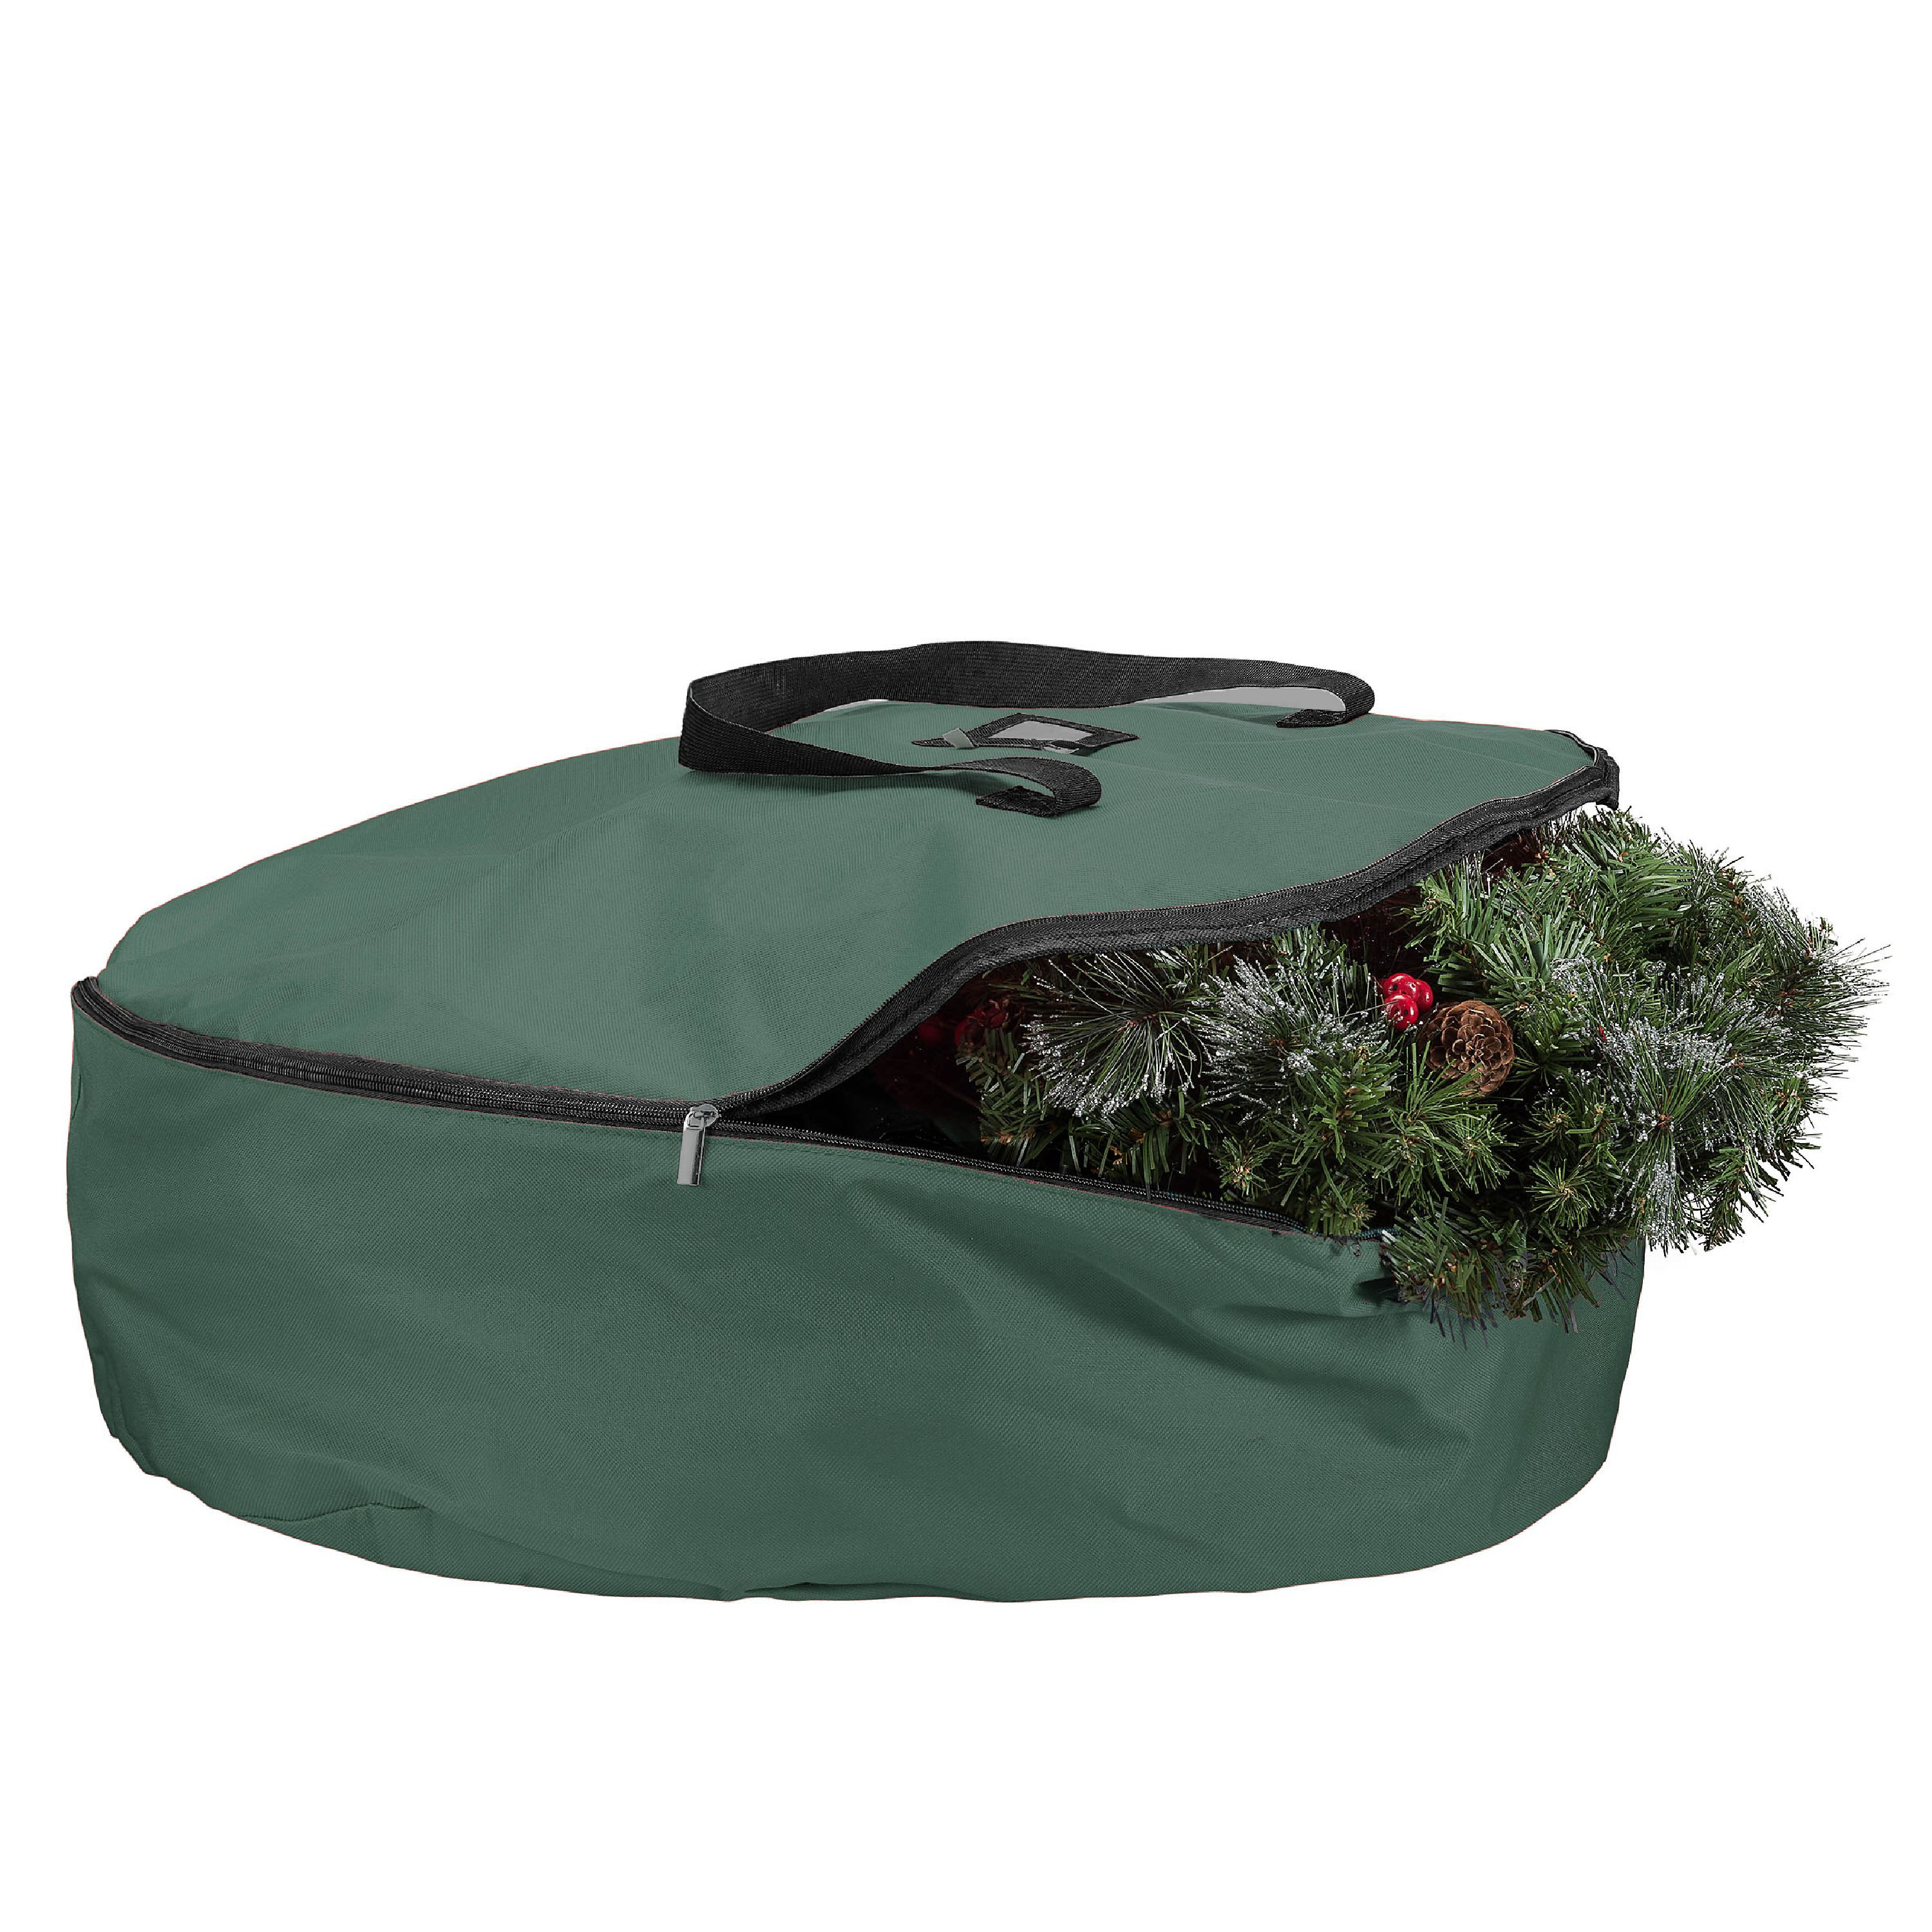 Zober Christmas Wreath Storage Bag - 30 x 30 x 8, 600D Oxford Tear Resistant Fabric Storage Bag with Sleek Zipper Featuring Transparent Card Slot for Labeling - Green